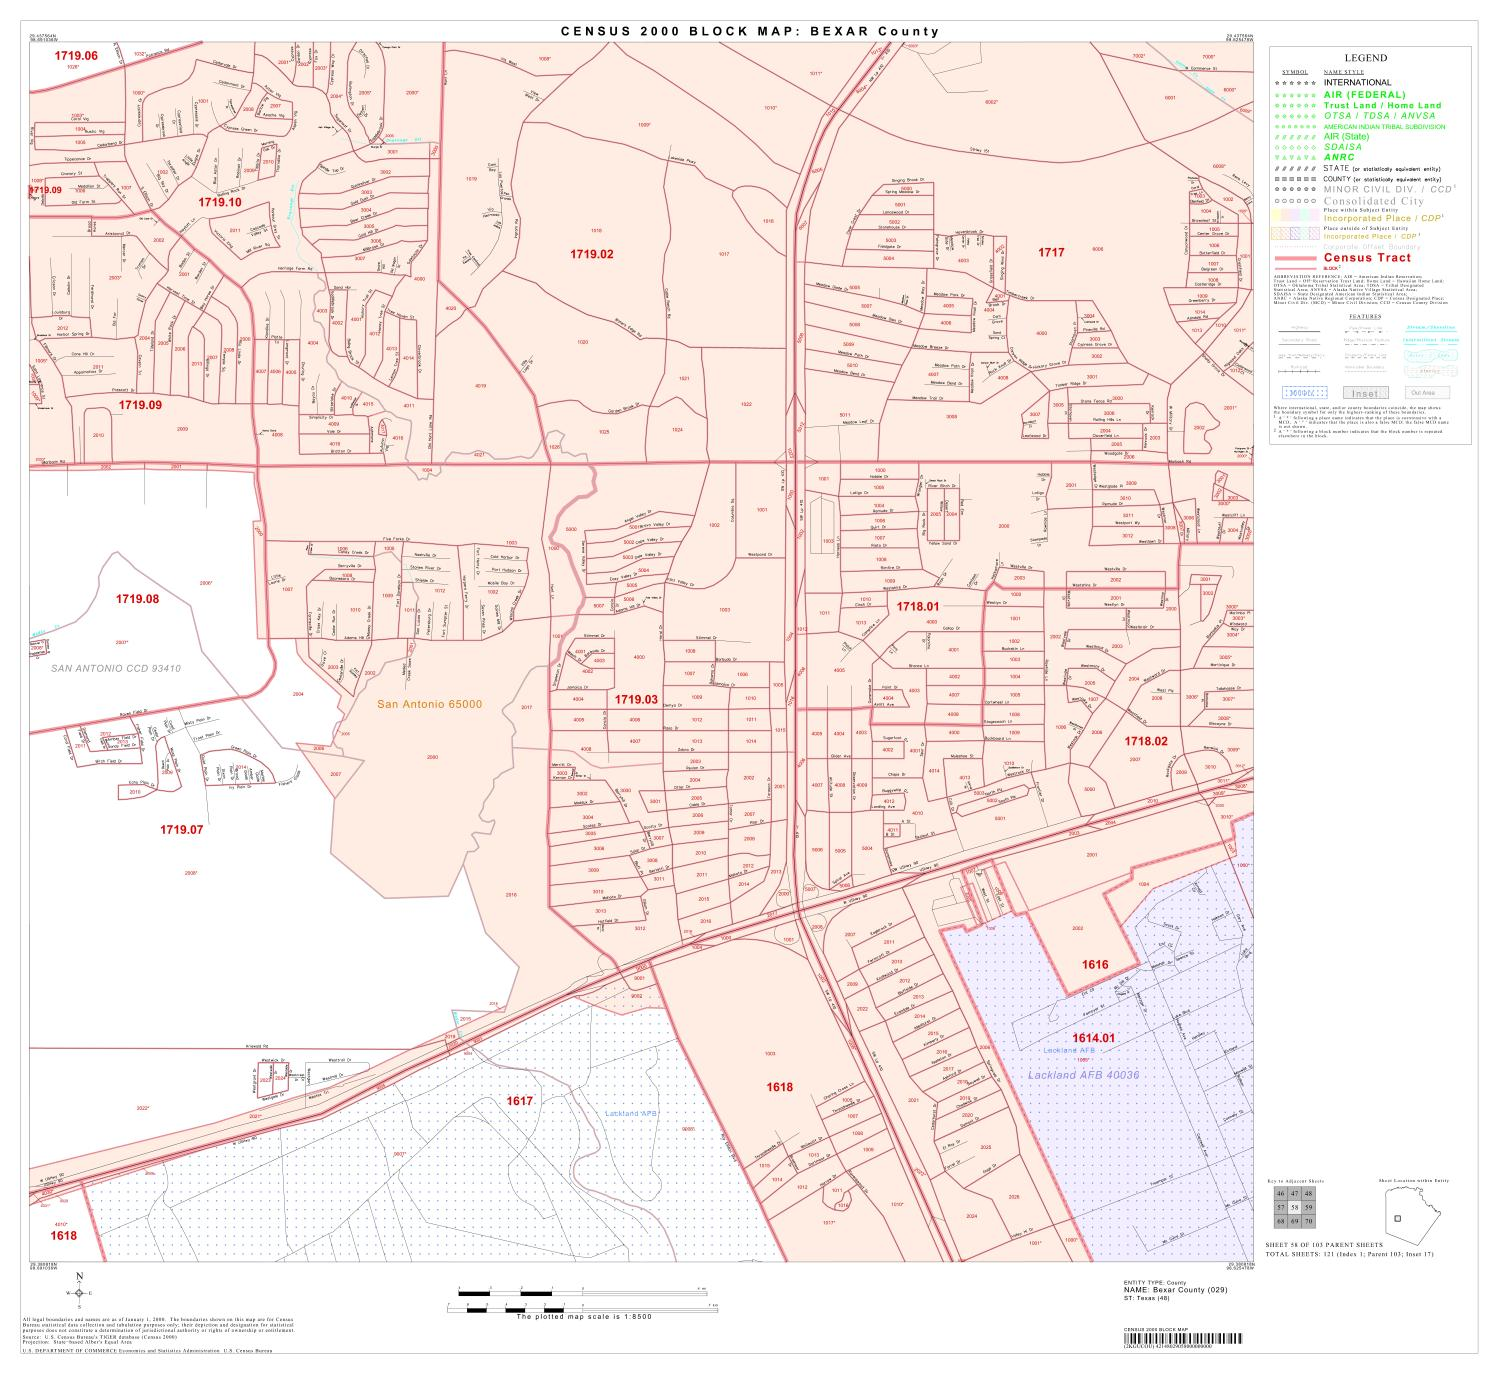 2000 Census County Block Map: Bexar County, Block 58                                                                                                      [Sequence #]: 1 of 1